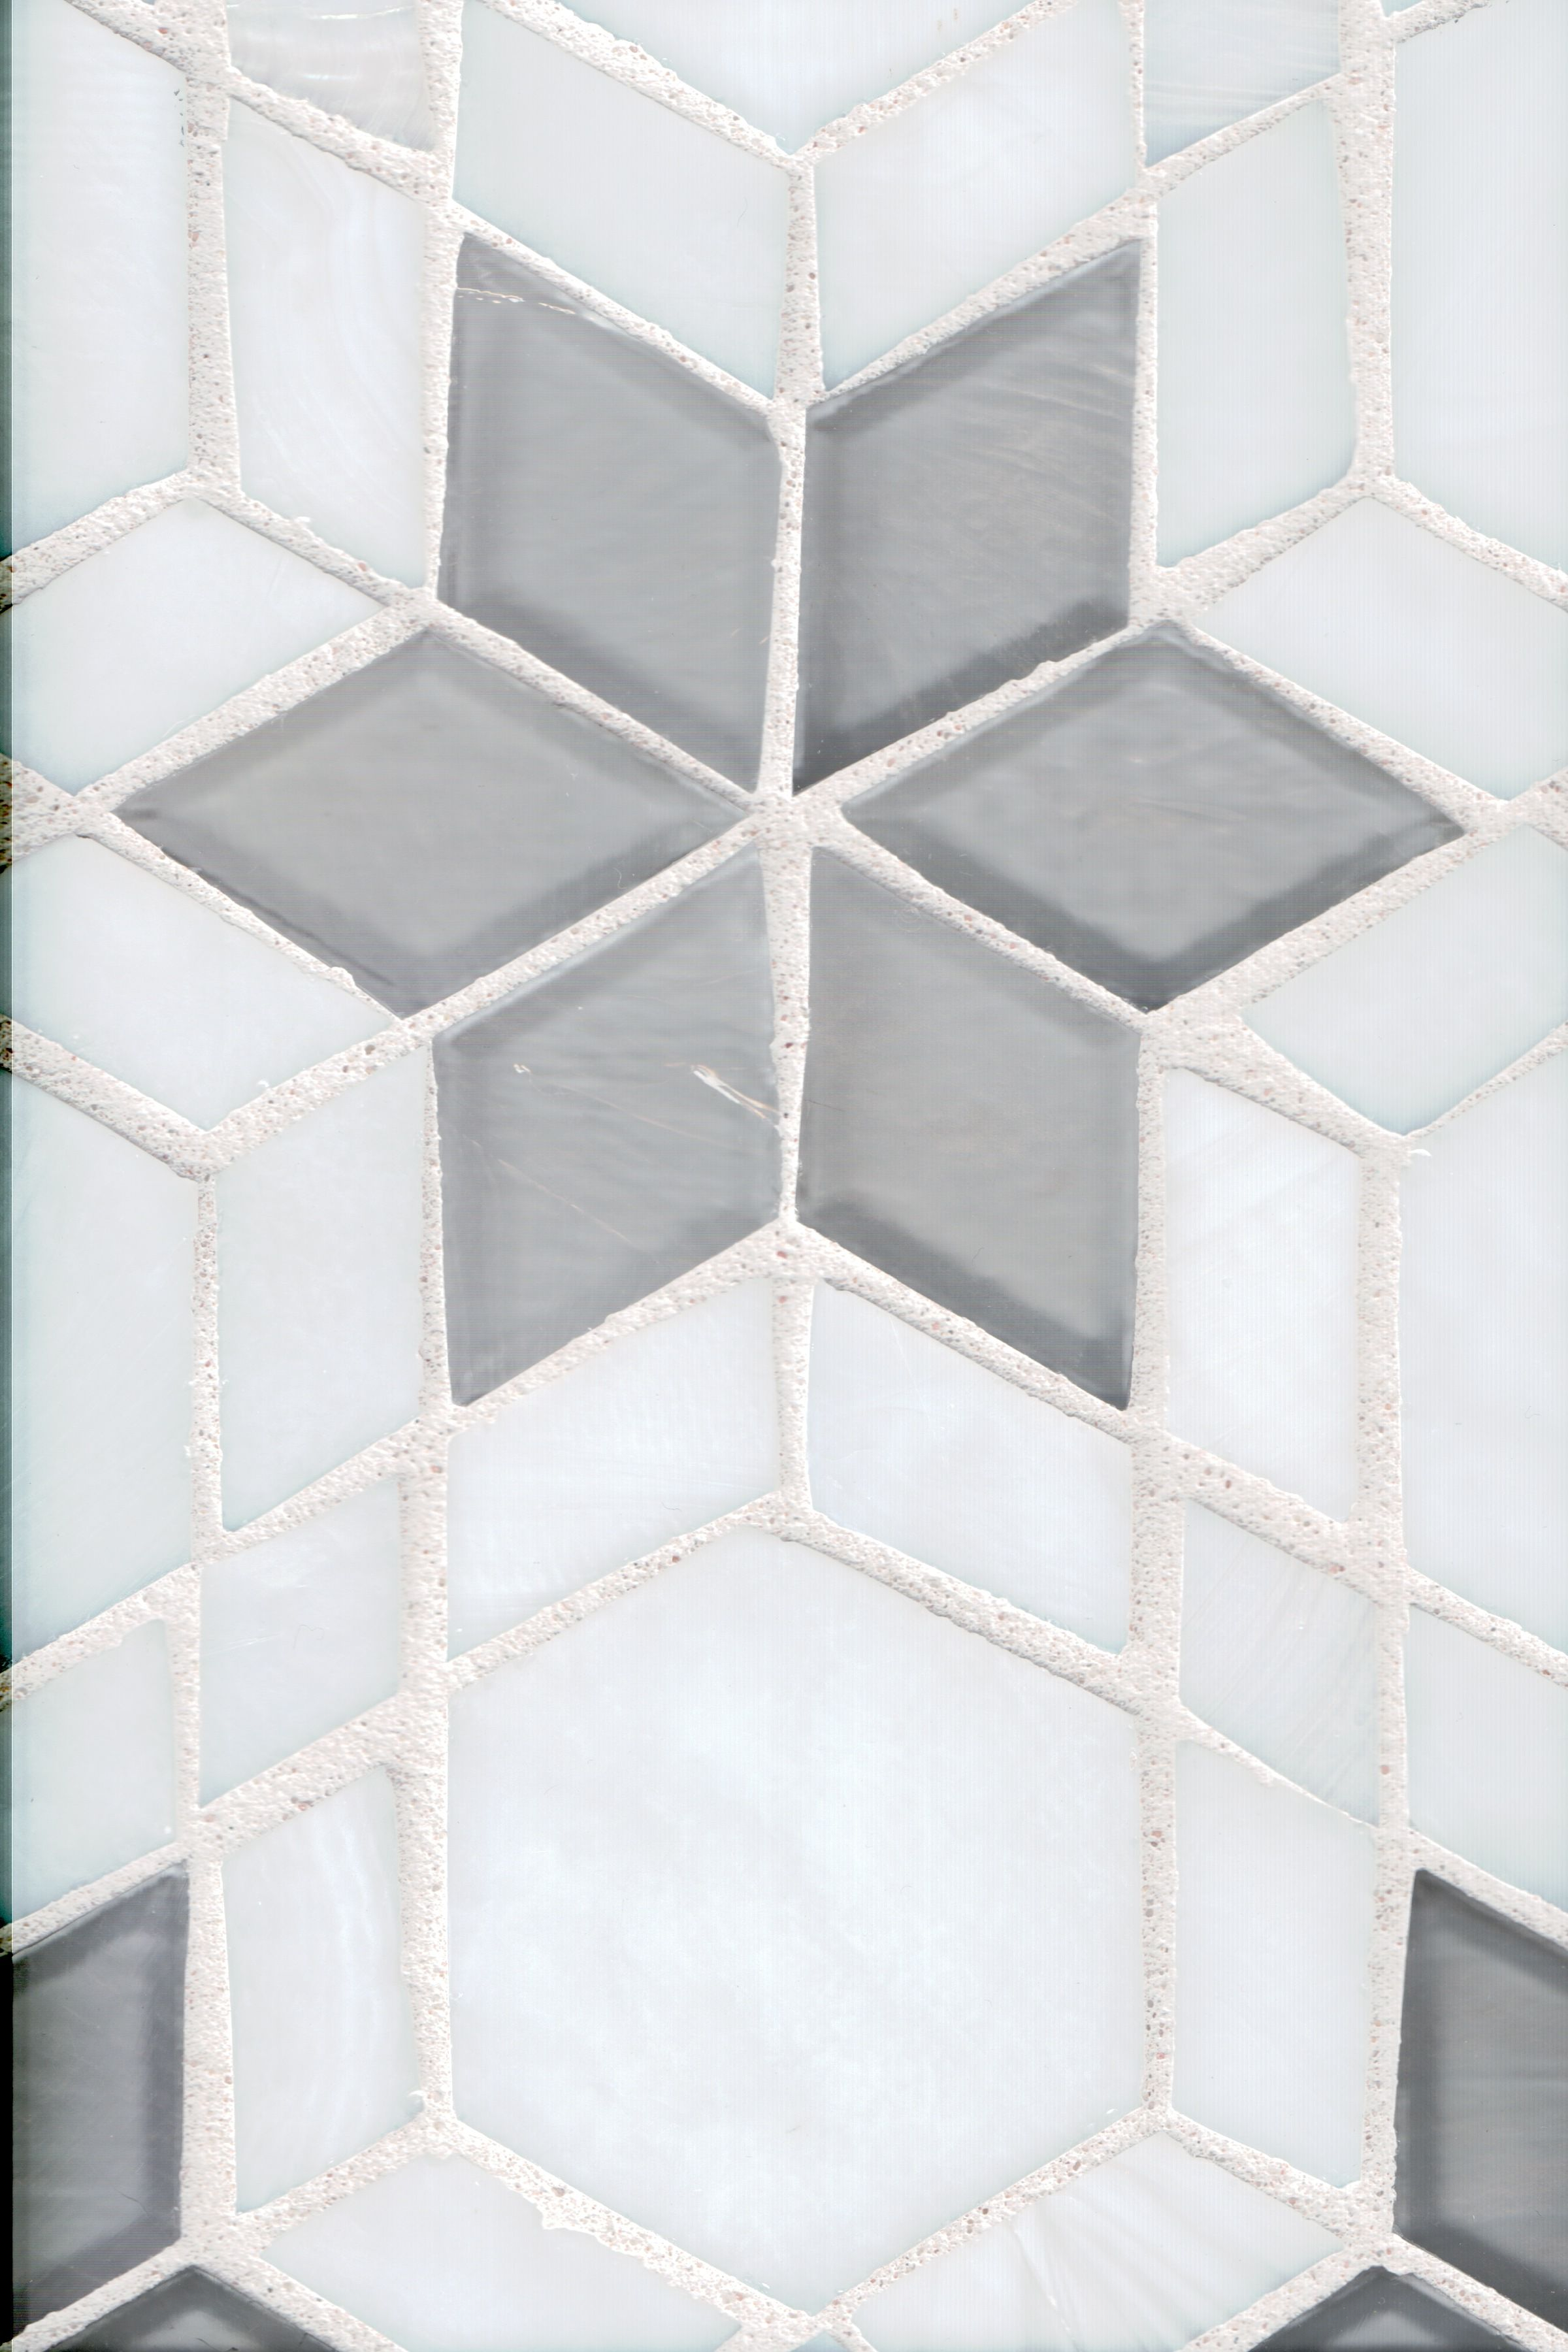 Fez Hexagon Blend - White and Grey glass tile available at World ...